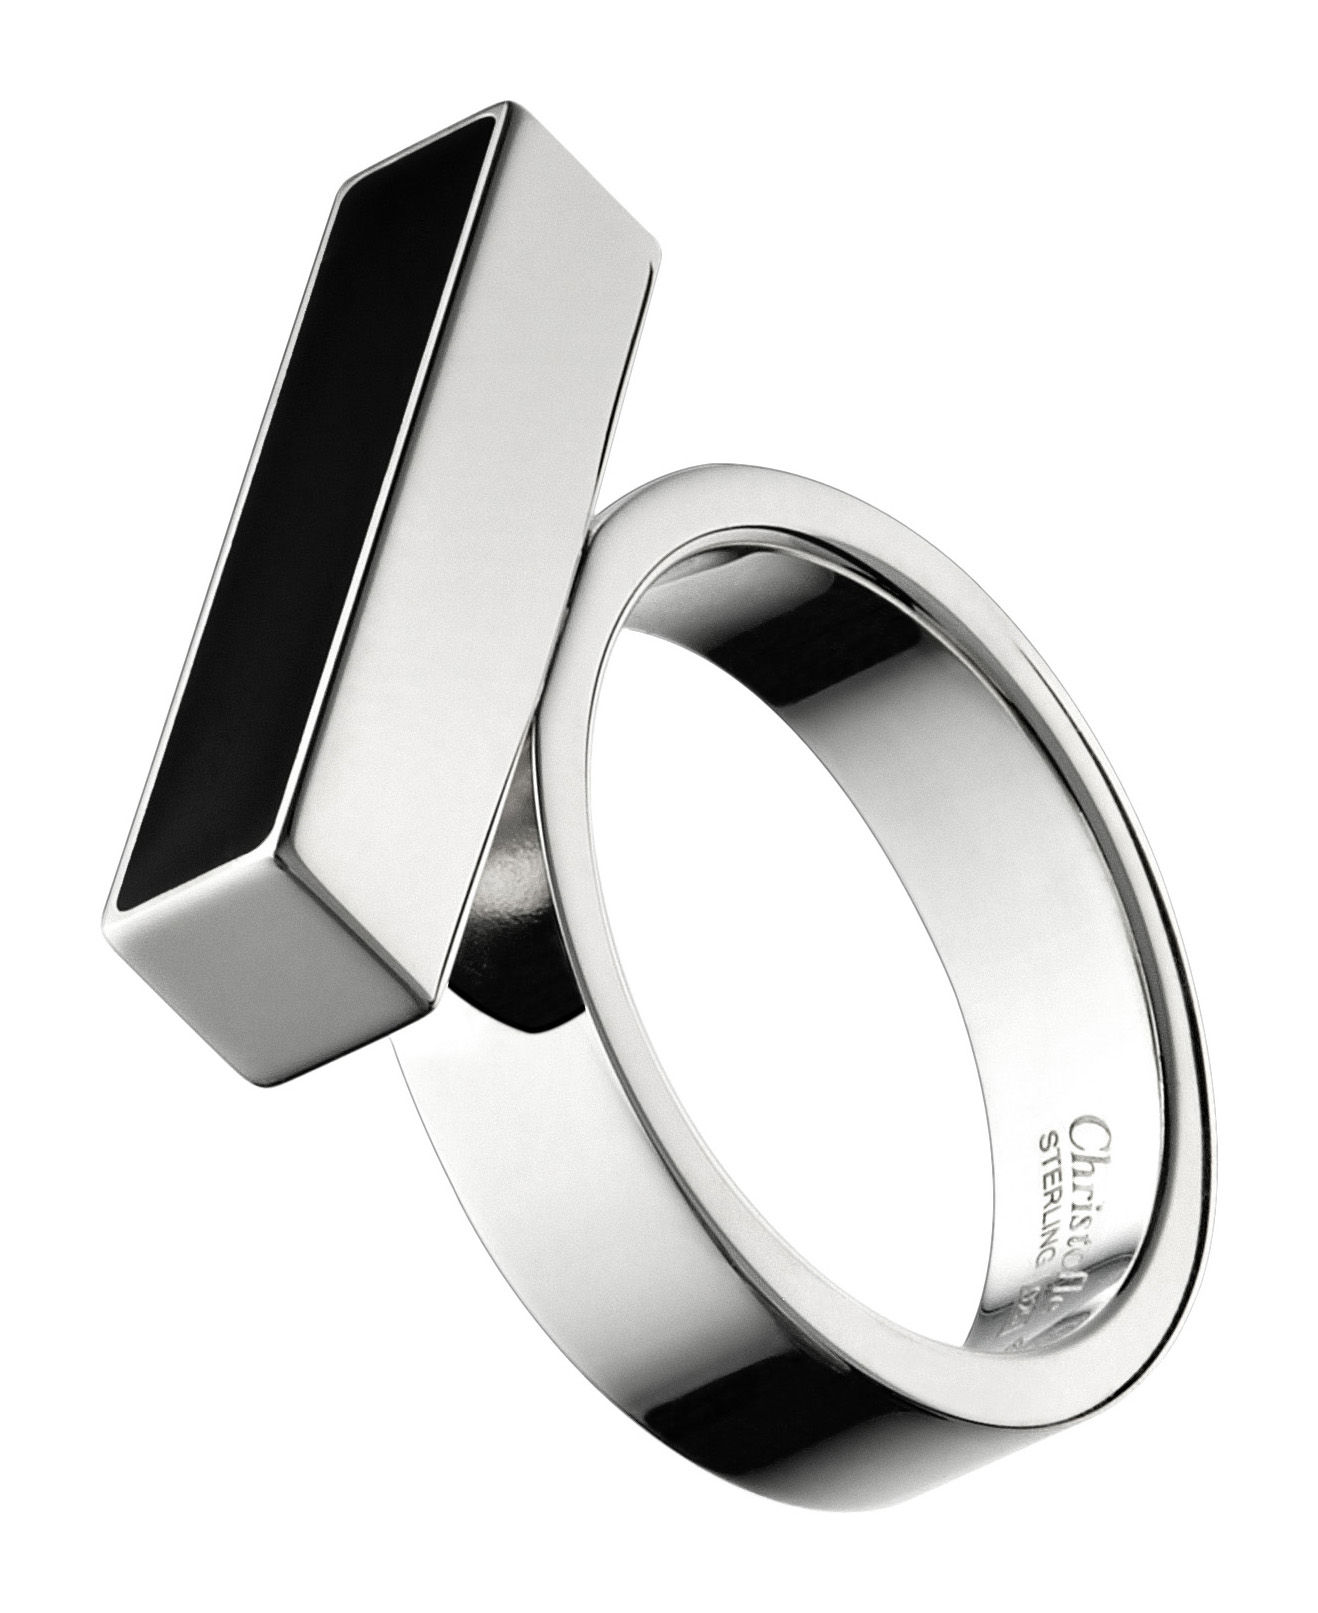 bague abstract 39 to barette by ora ito argent noir taille 53 christofle. Black Bedroom Furniture Sets. Home Design Ideas